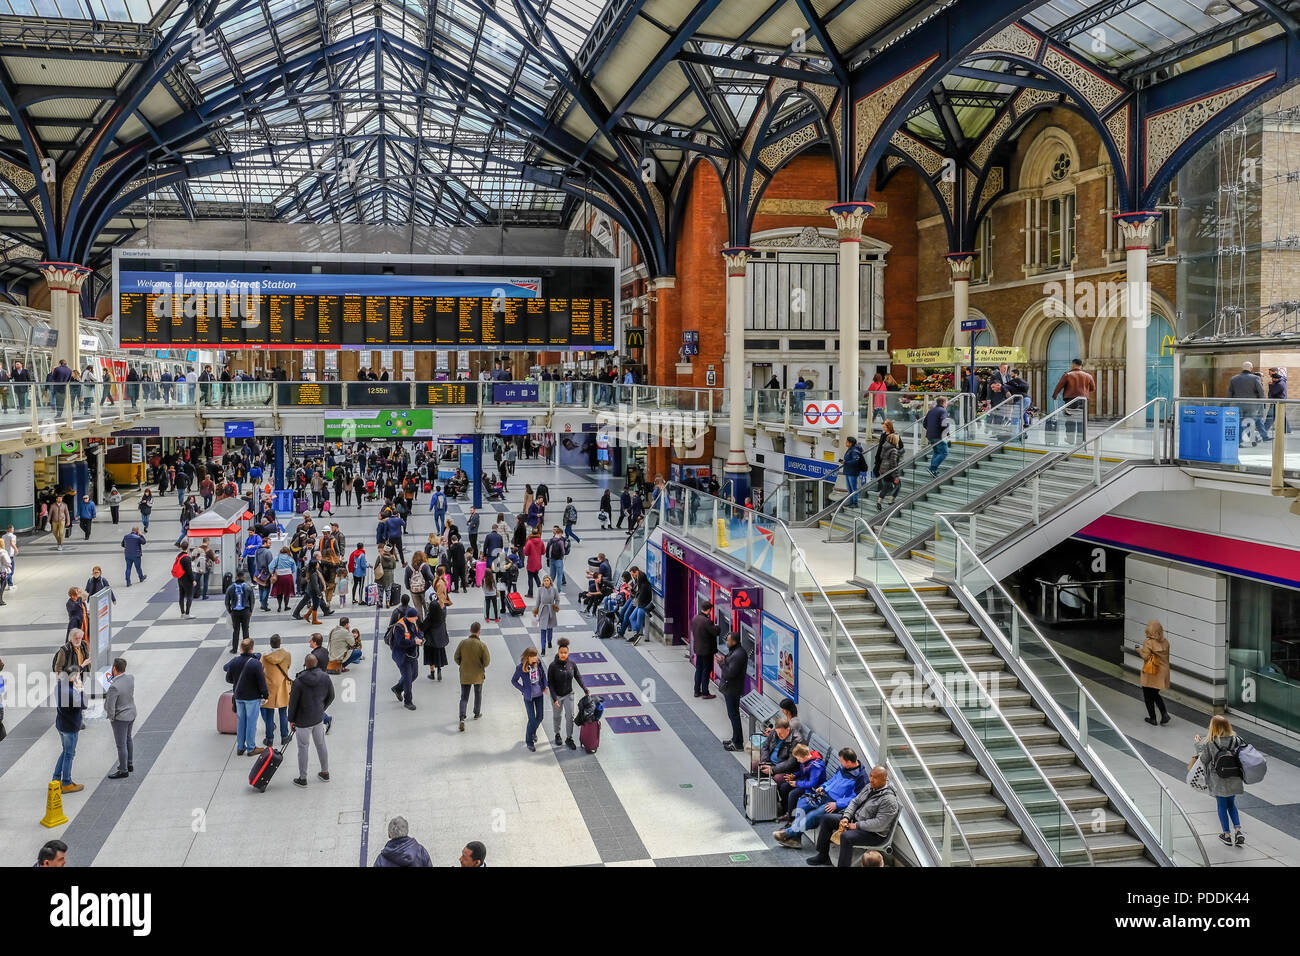 Liverpool Street, London, UK - April 6, 2018: Busy scene inside Liverpool Street mainline station with lots of passengers.  Taken from a vantage point - Stock Image